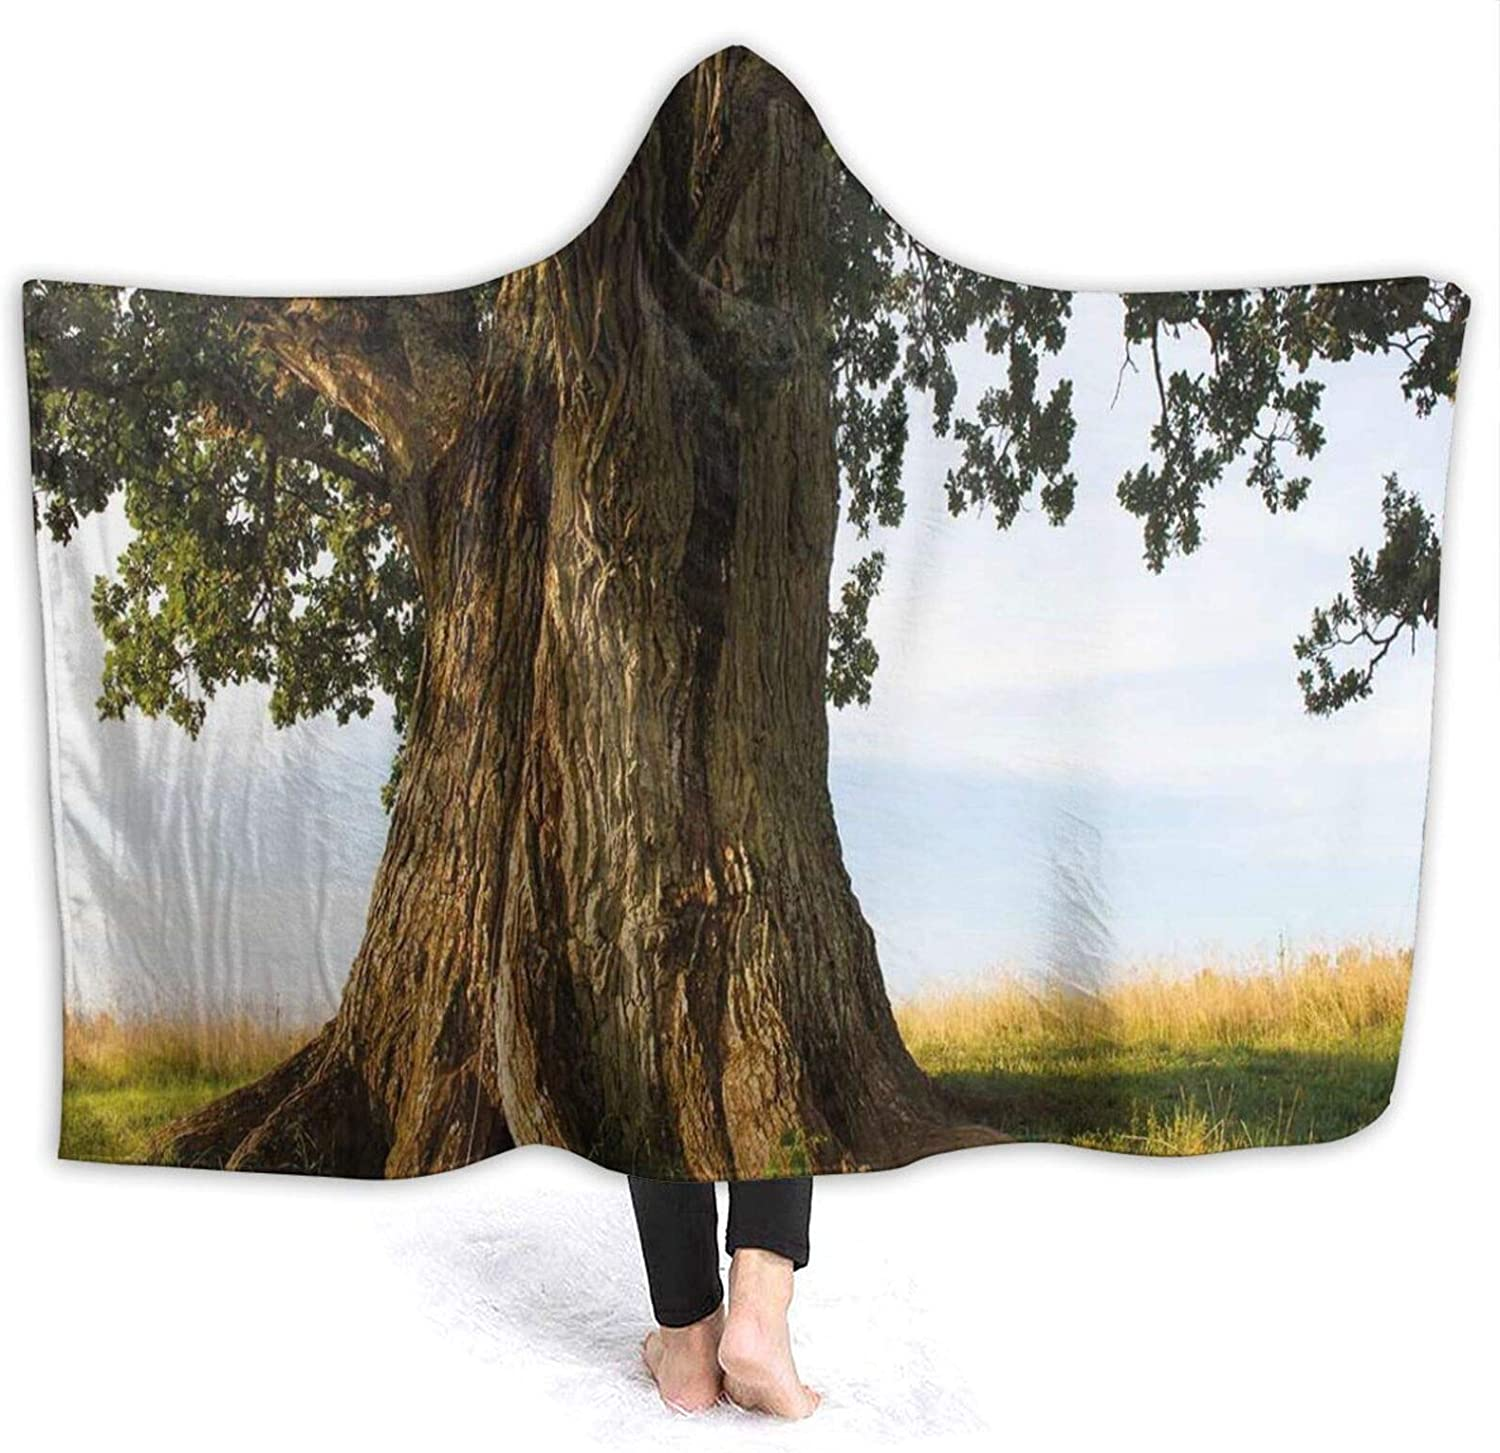 Hooded Blanket Anti-Pilling Flannel Max 54% OFF Max 41% OFF Majestic E Tree On Oak Grass